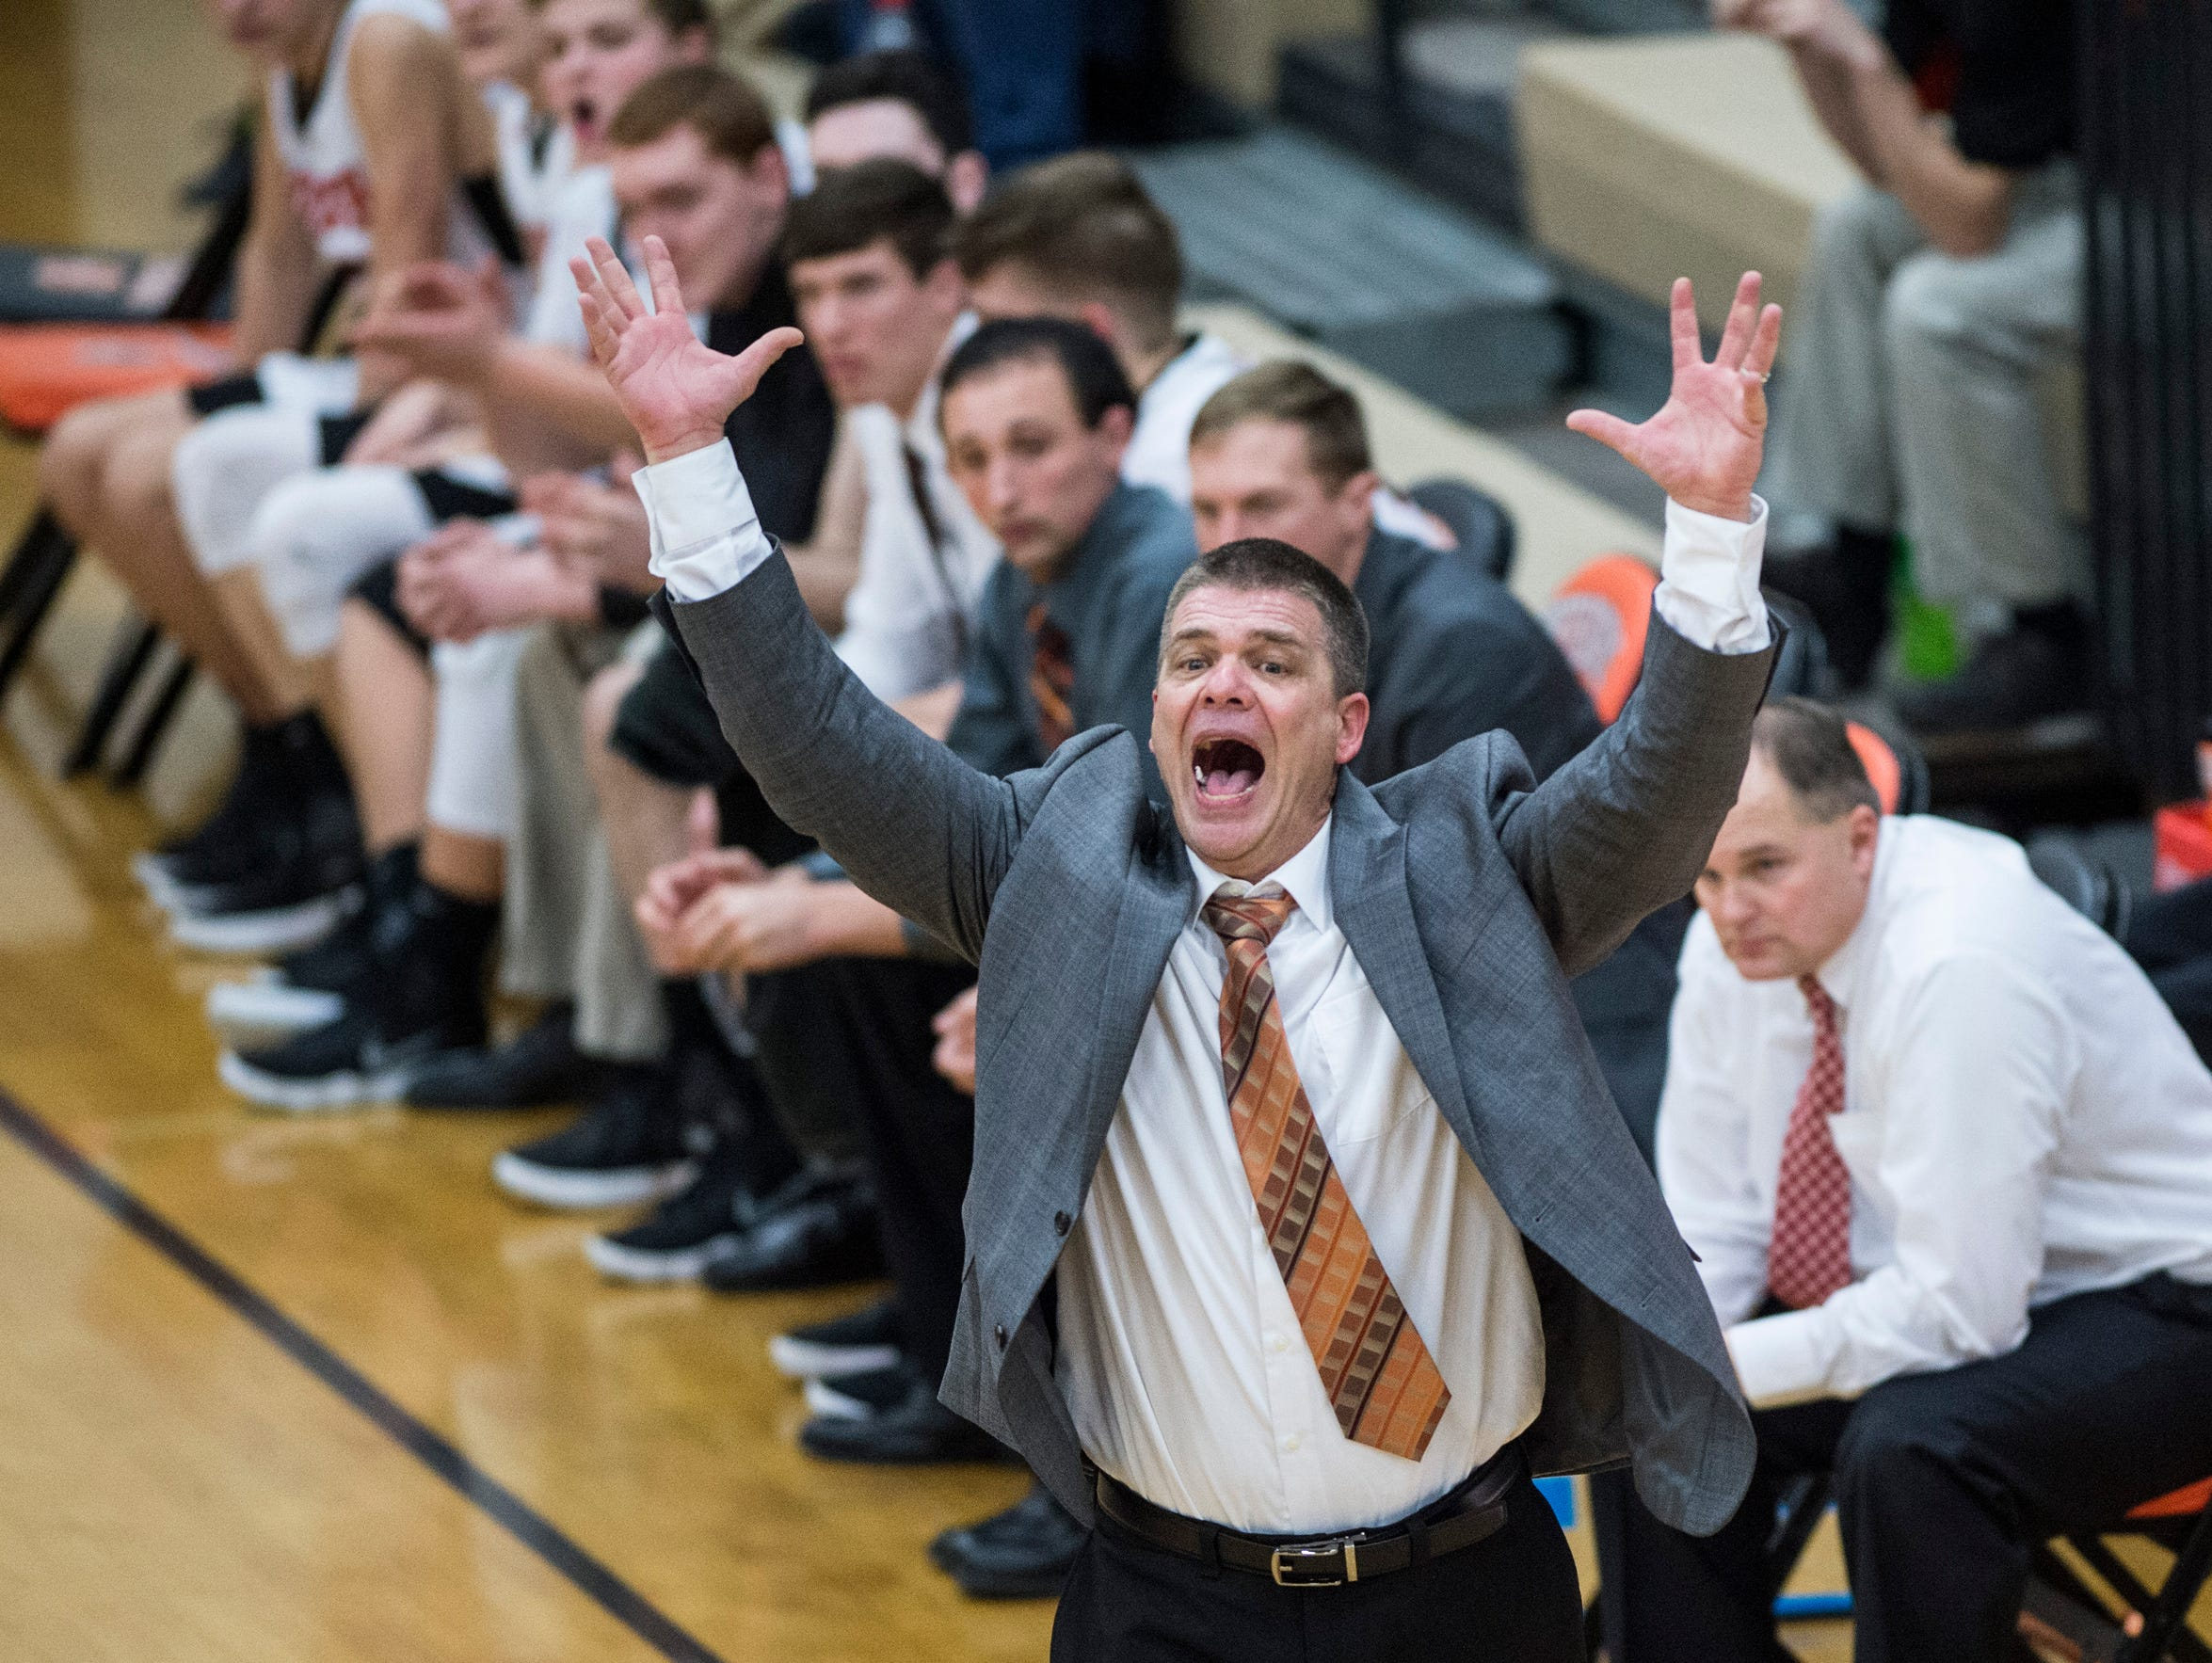 North Daviess head coach Brent Dalrymple yells at his team from the the bench at North Daviess High School on Friday, Feb. 16, 2018. North Daviess defeated White River Valley 38-23.